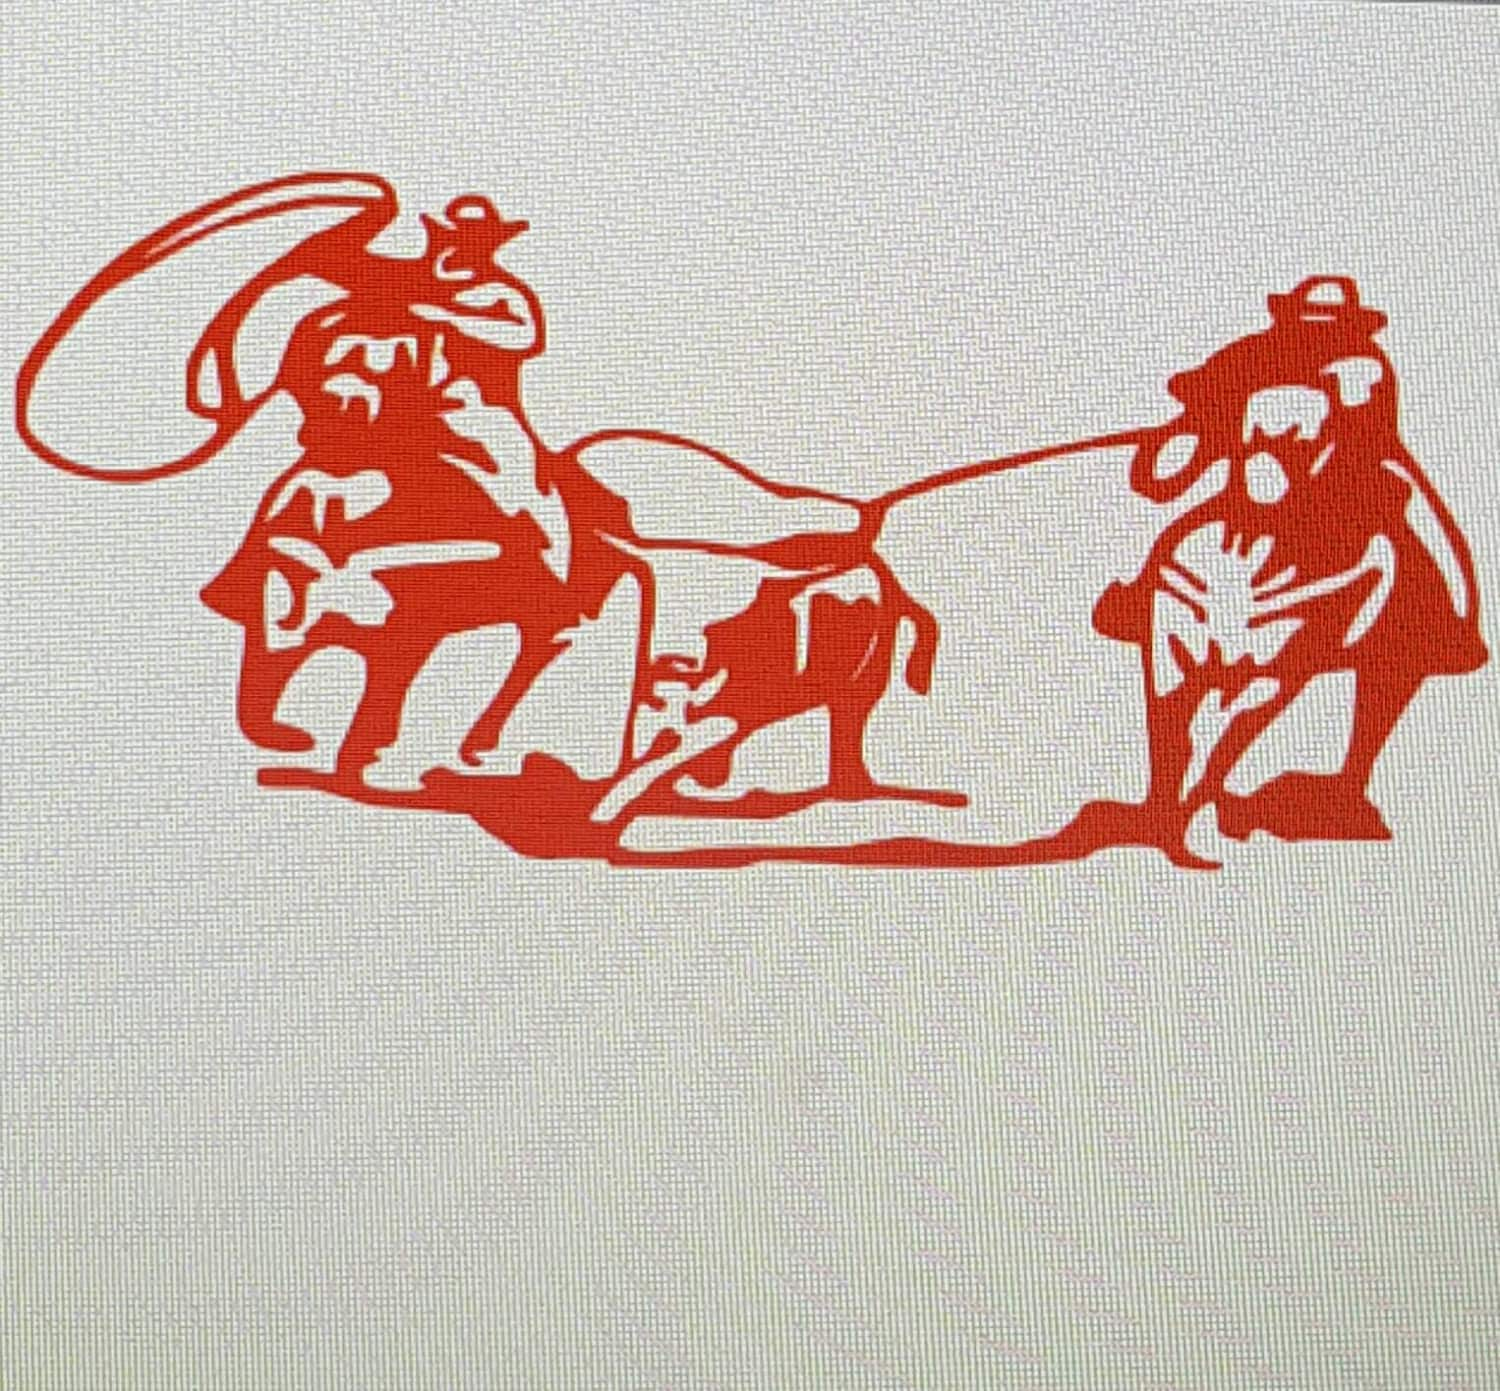 Rodeo Team Roping Decal Team Roping Car Decals Team Roping